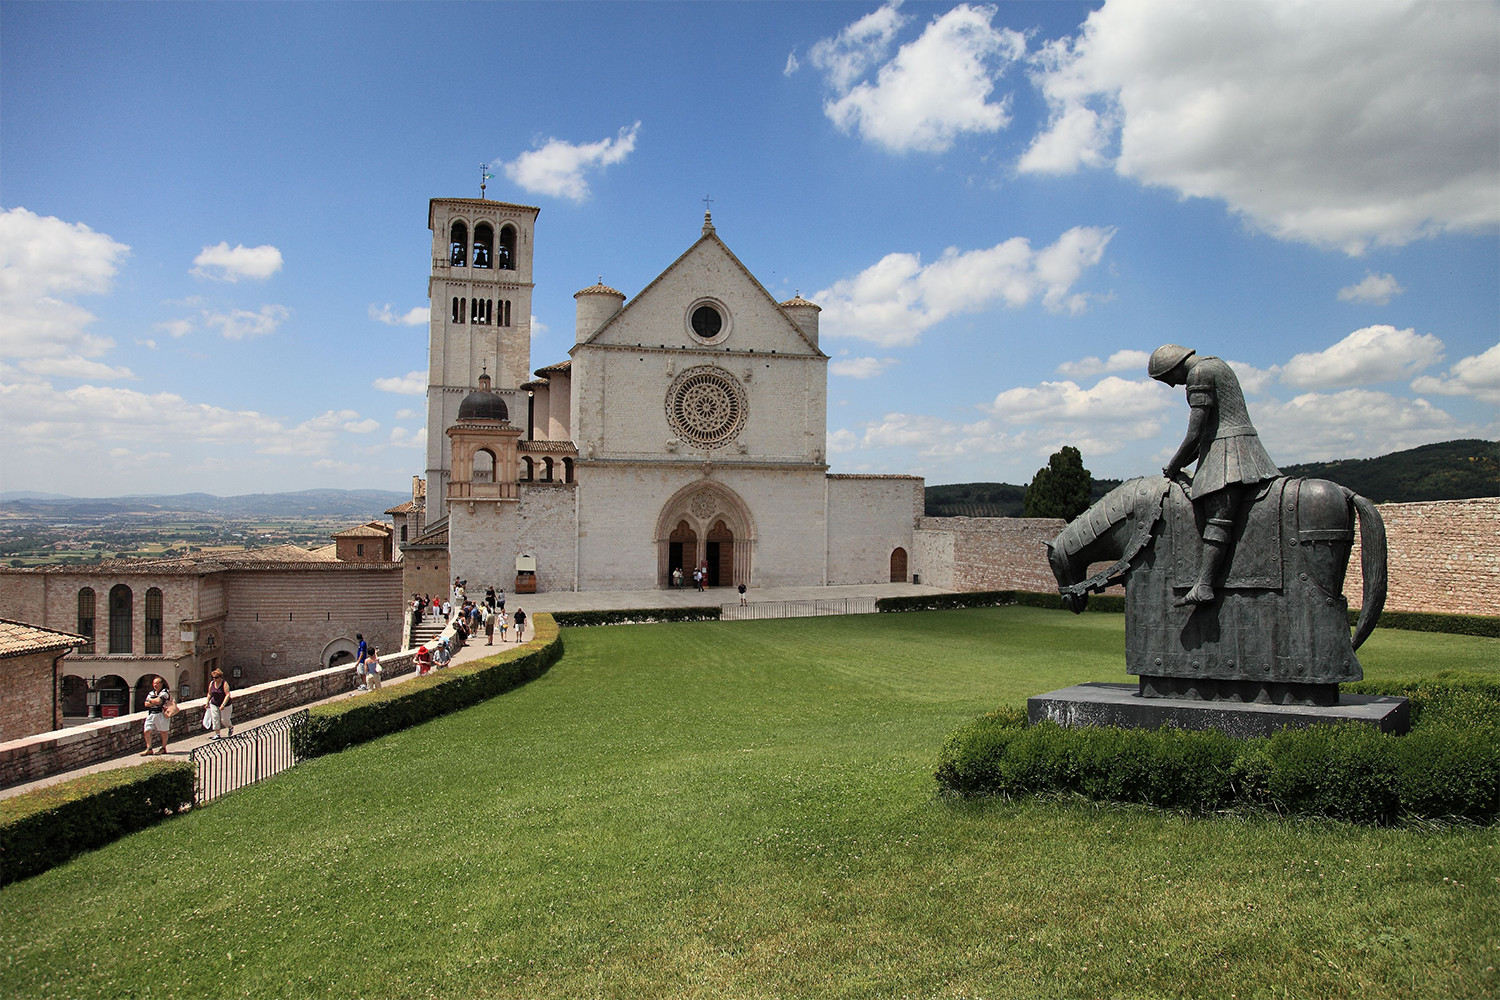 Basilica superiore di San Francesco,<br>photo by Michele Tortoioli